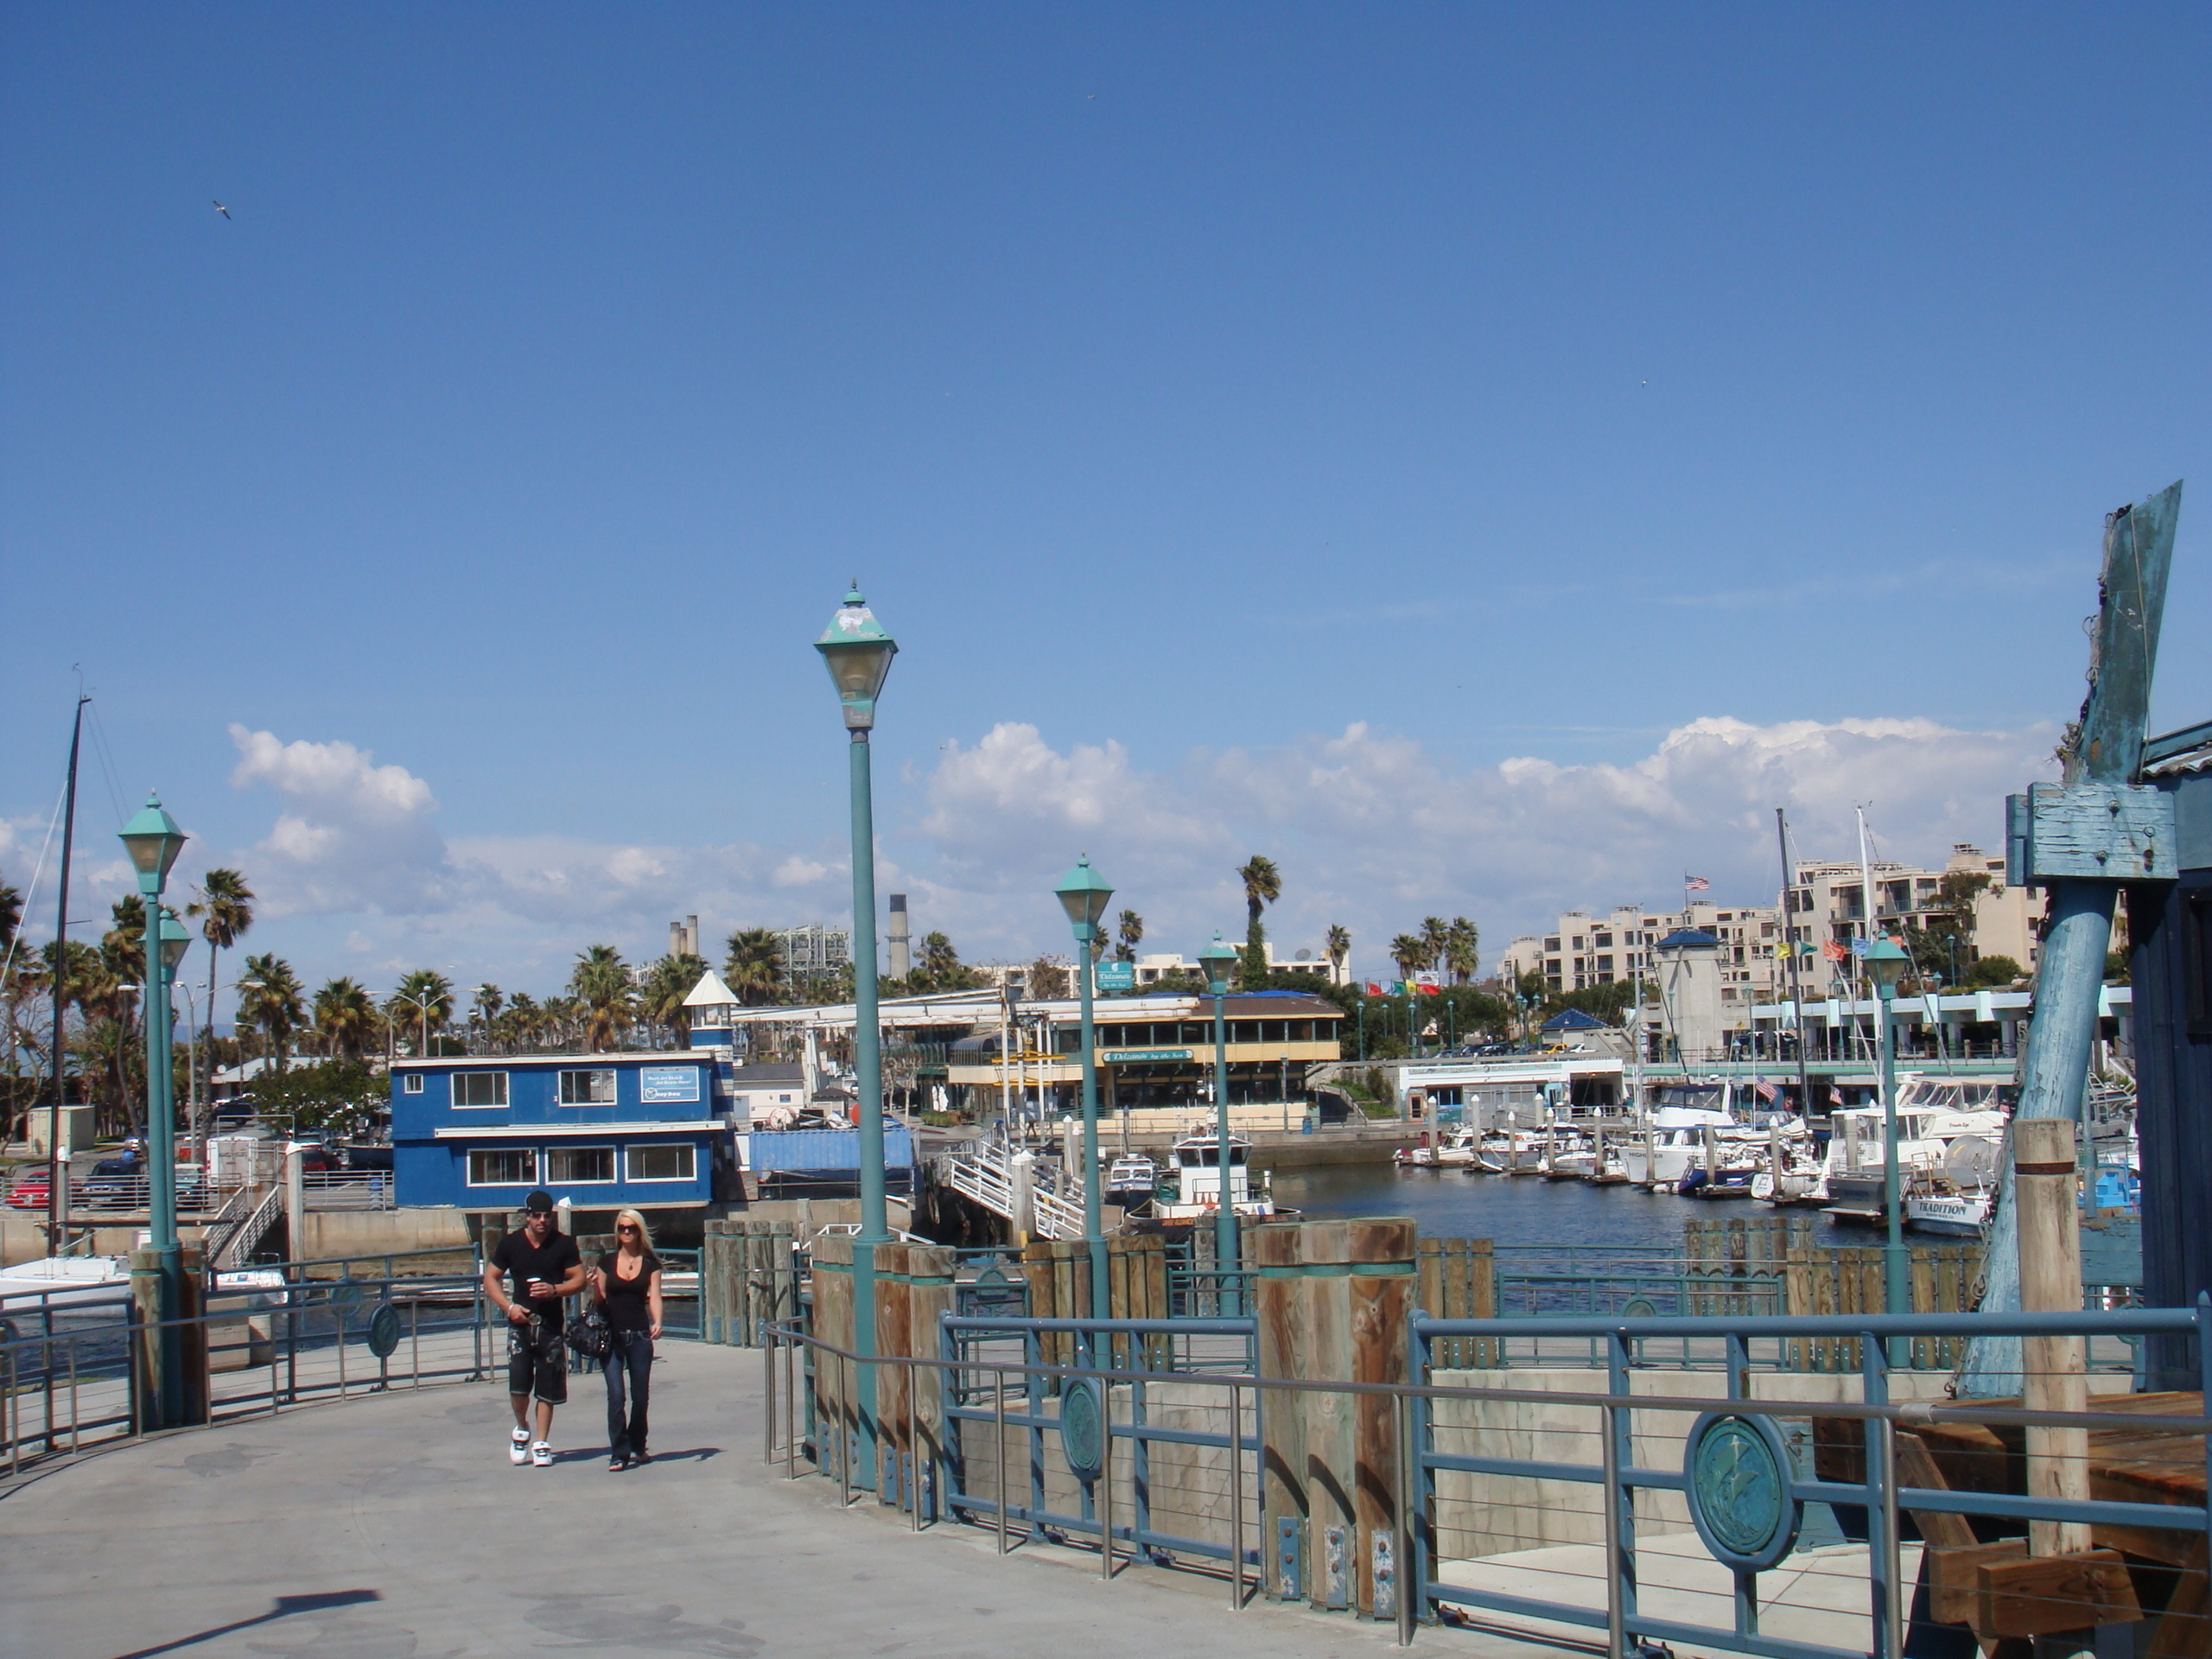 California Images Redondo Beach Pier Hd Wallpaper And Background Photos